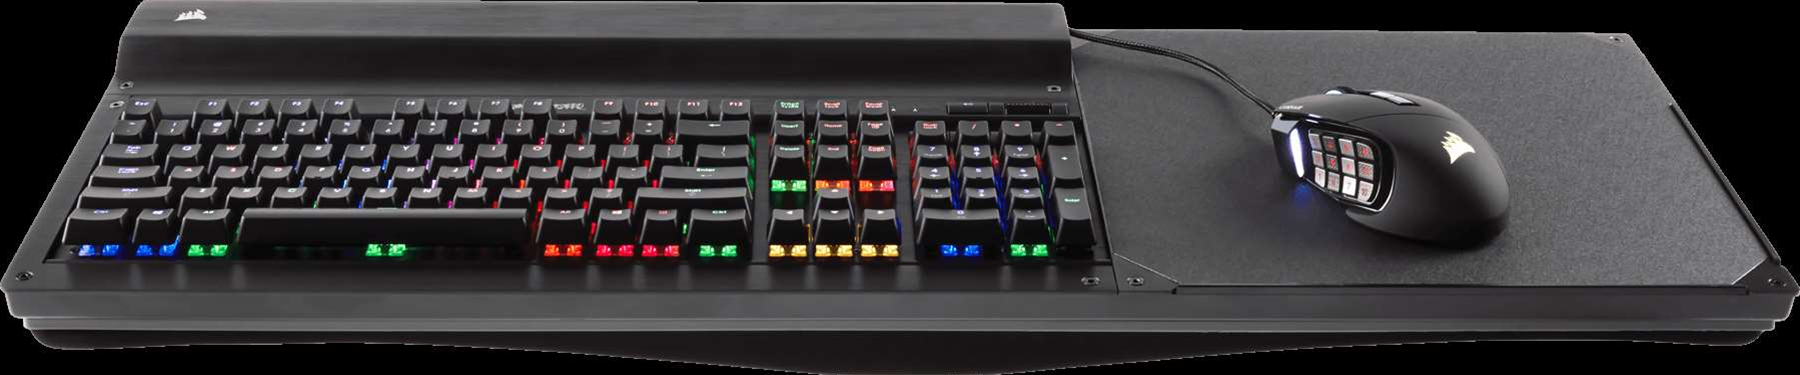 Corsair launches new Lapdog keyboard and mouse platform